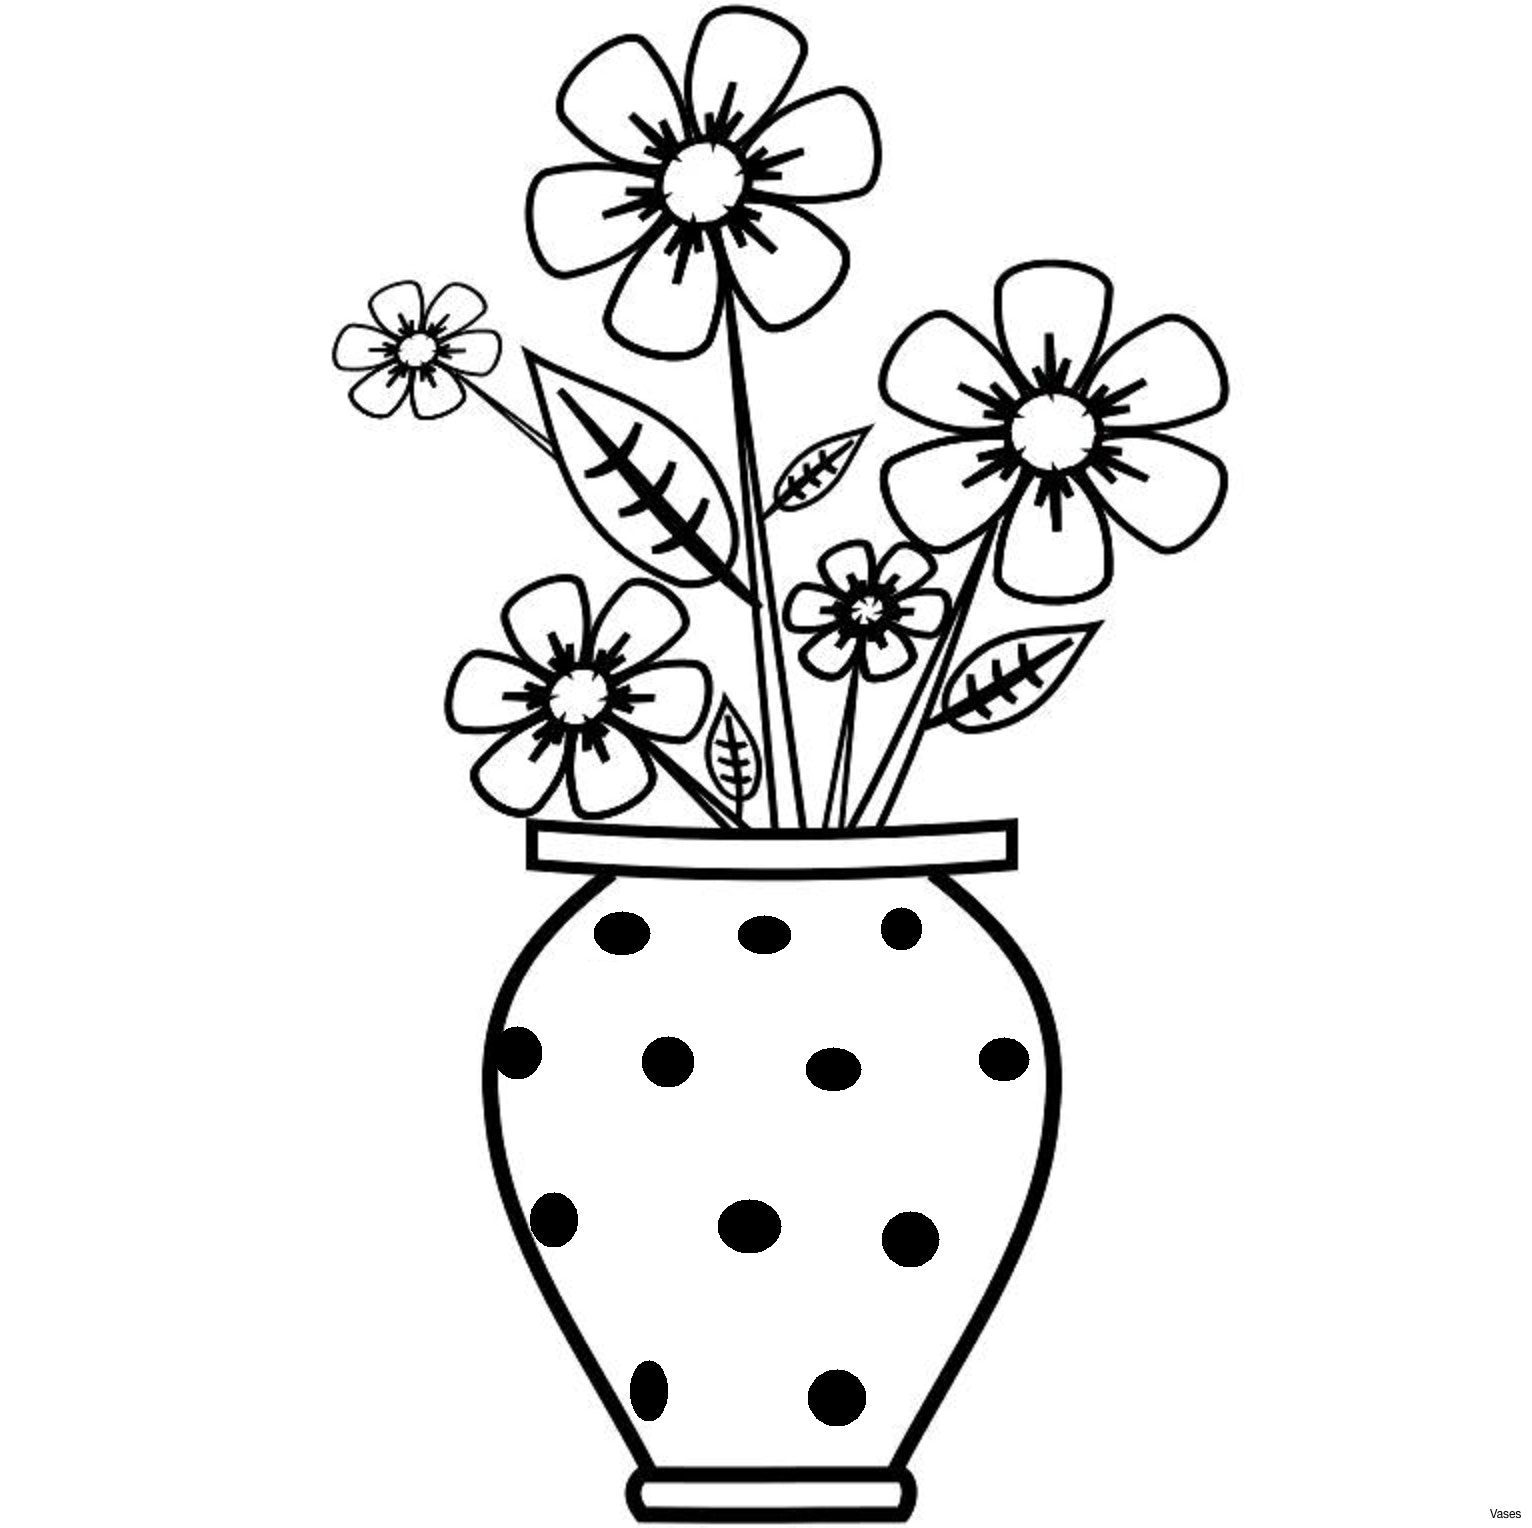 1532x1528 Flower Vase Drawing Flowers In A The Best Ideash Vases Drawings